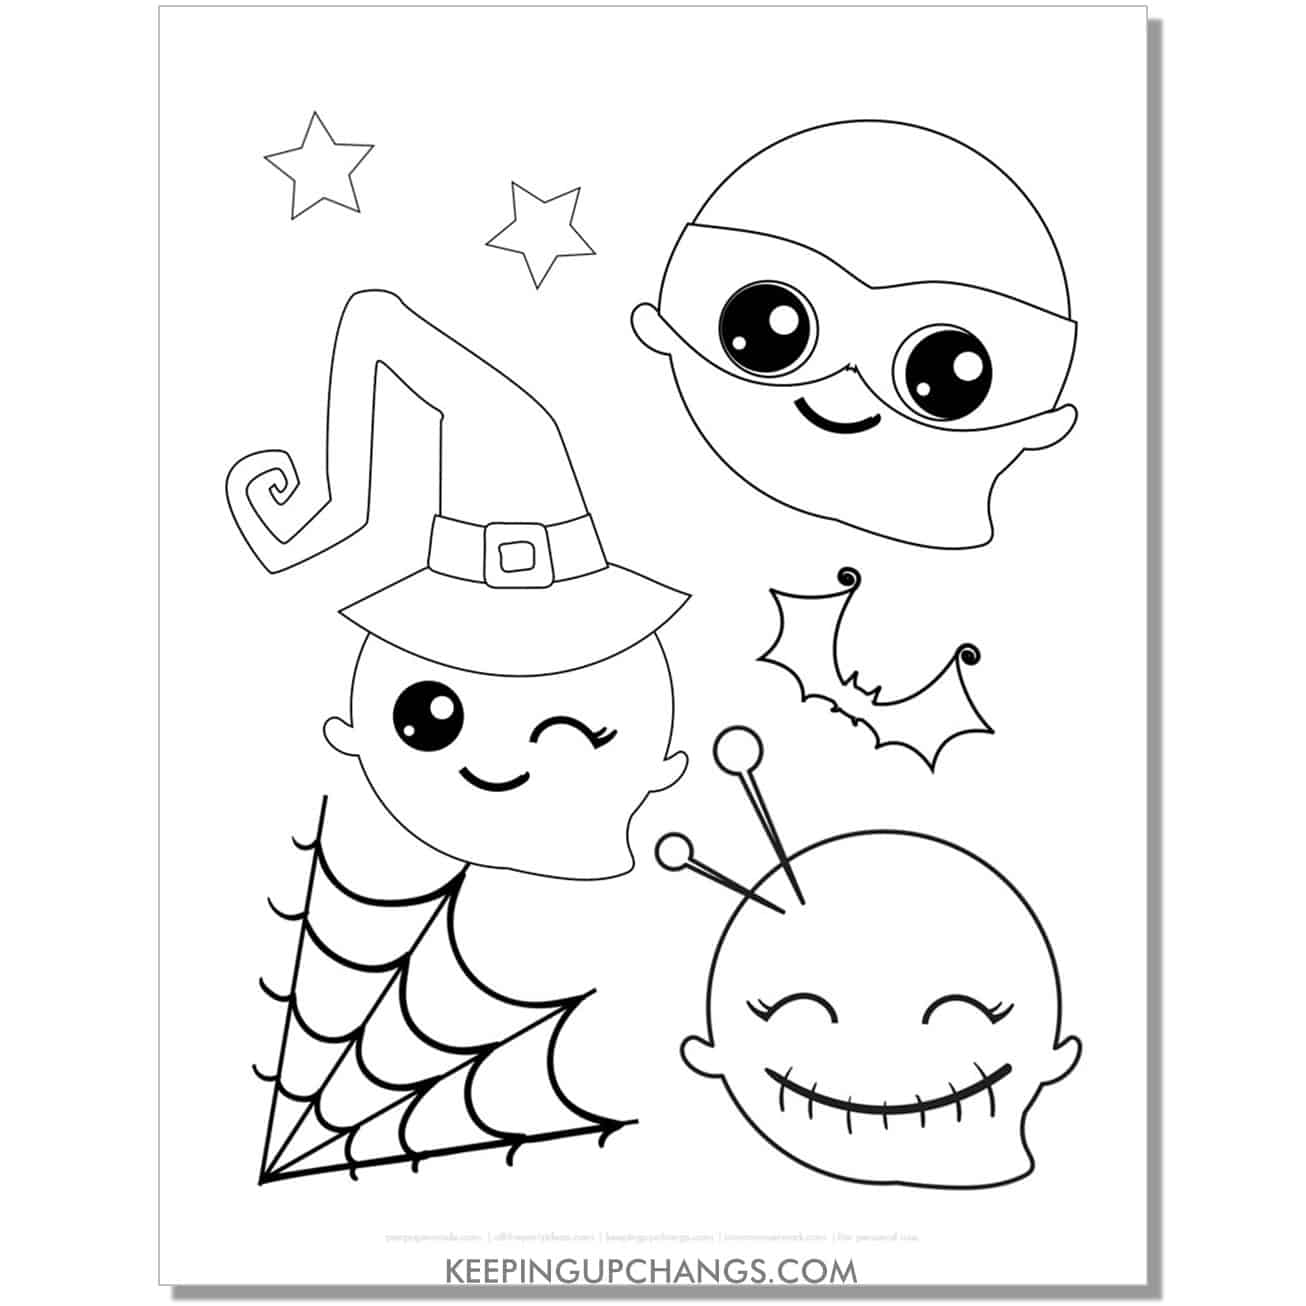 free ninja, witch, voodoo ghost coloring page.